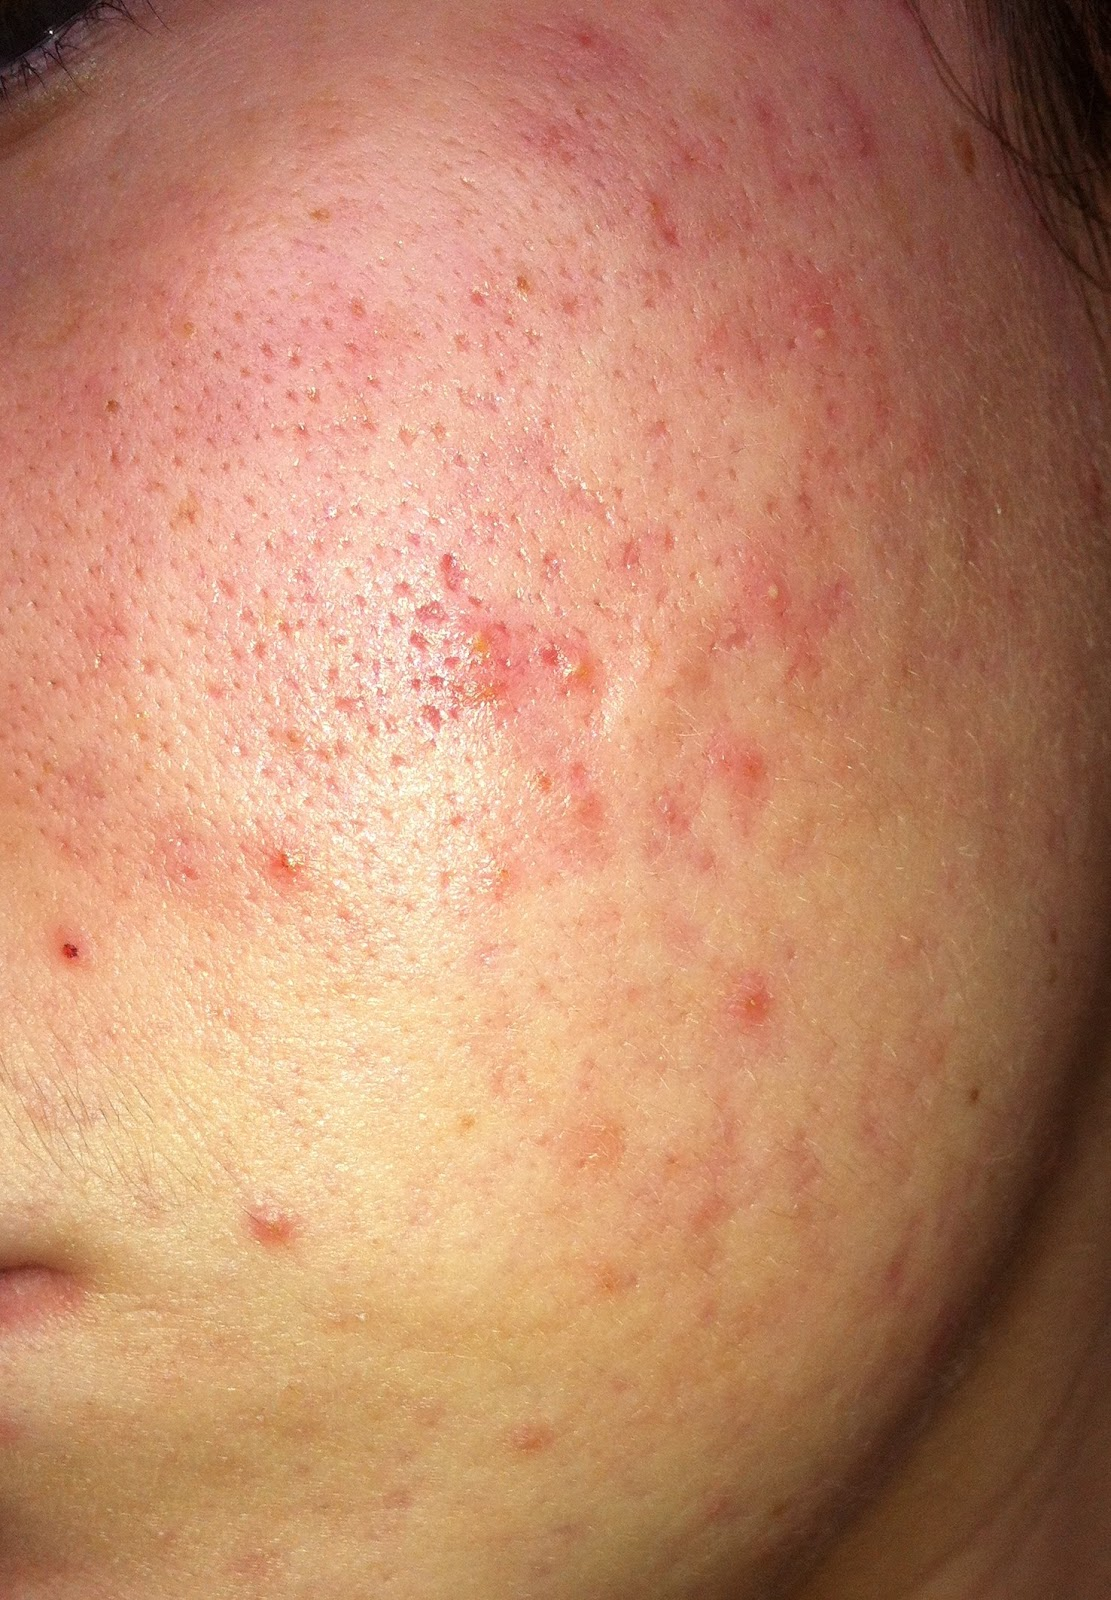 Roaccutane - Week by Week: octobre 2012